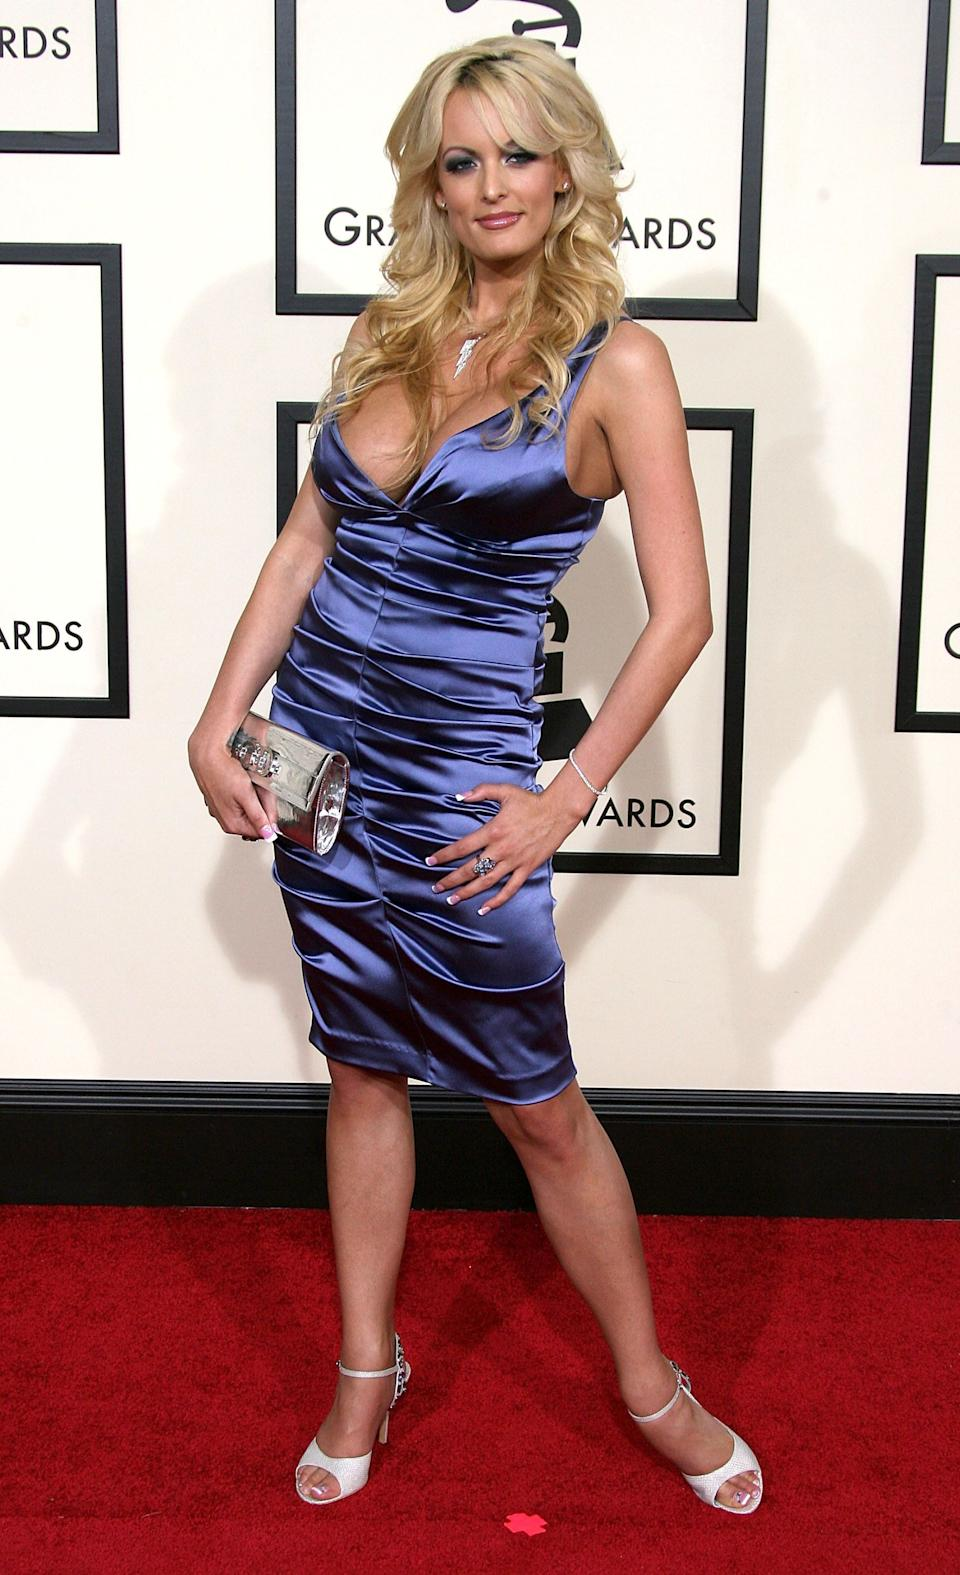 At the 50th annual Grammy Awards at the Staples Center in Los Angeles.